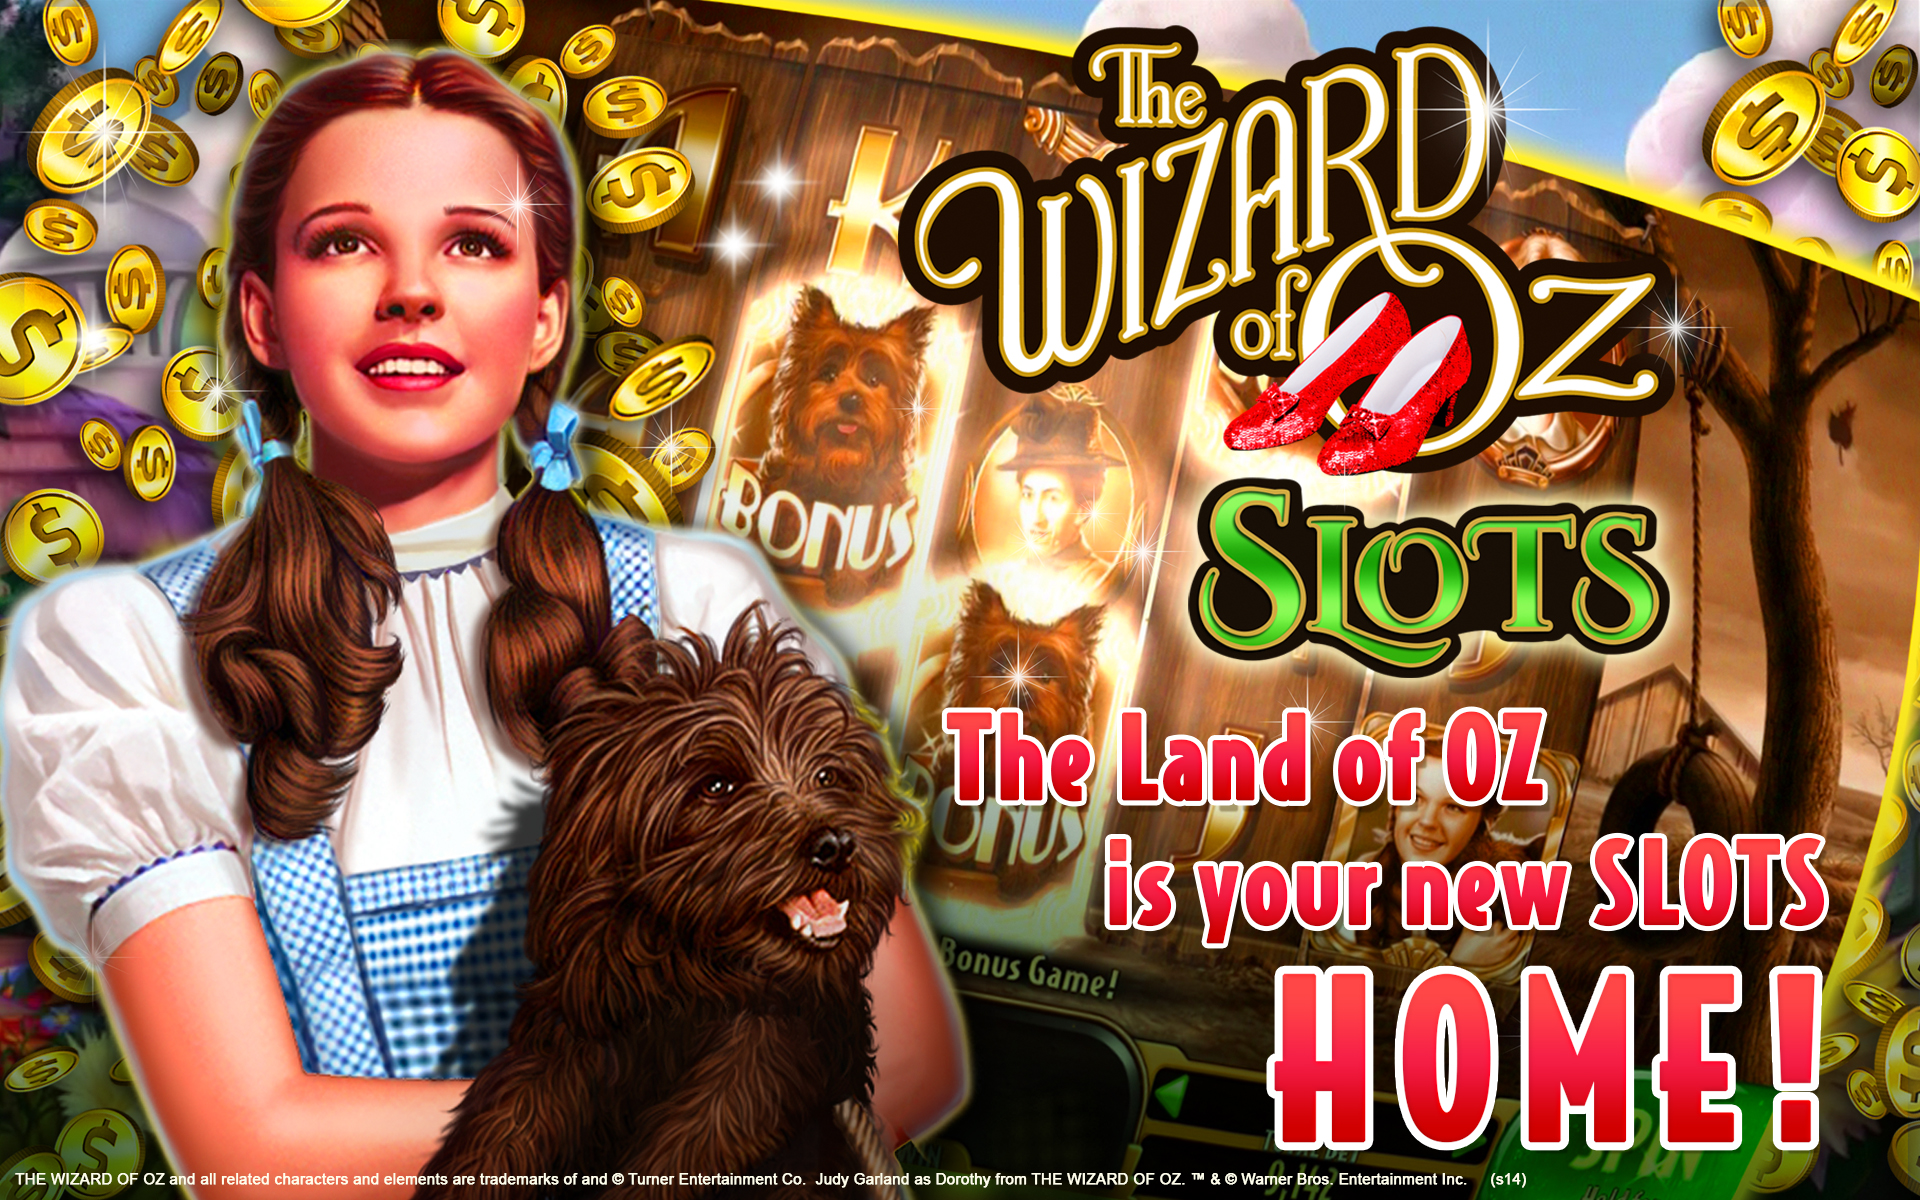 Wizard Of Oz Casino Slot Machine